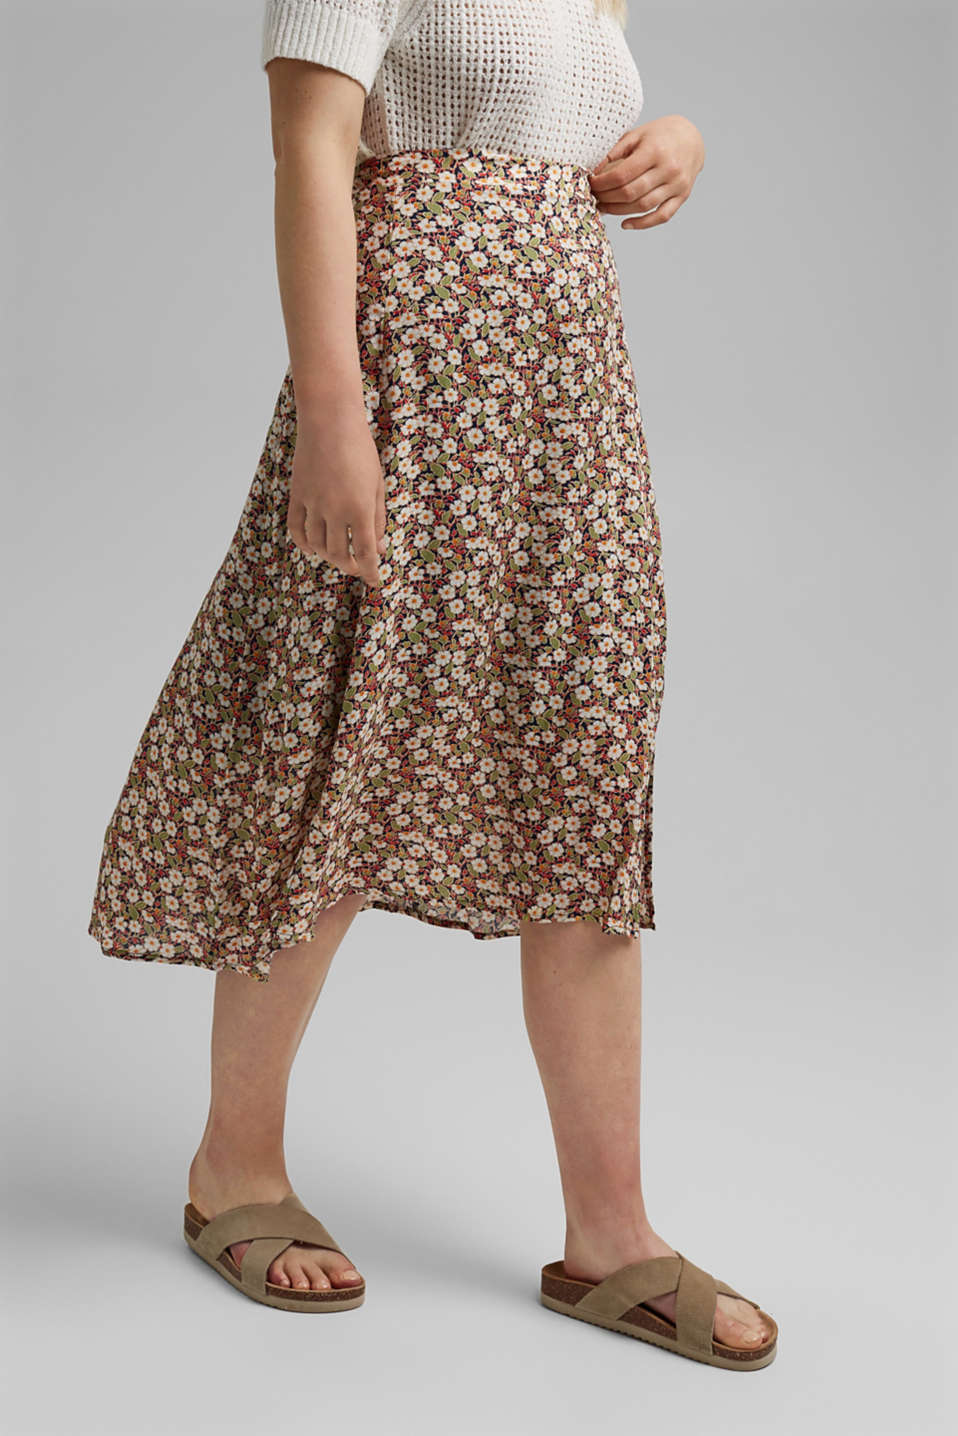 Esprit - Floral midi skirt made of LENZING™ ECOVERO™